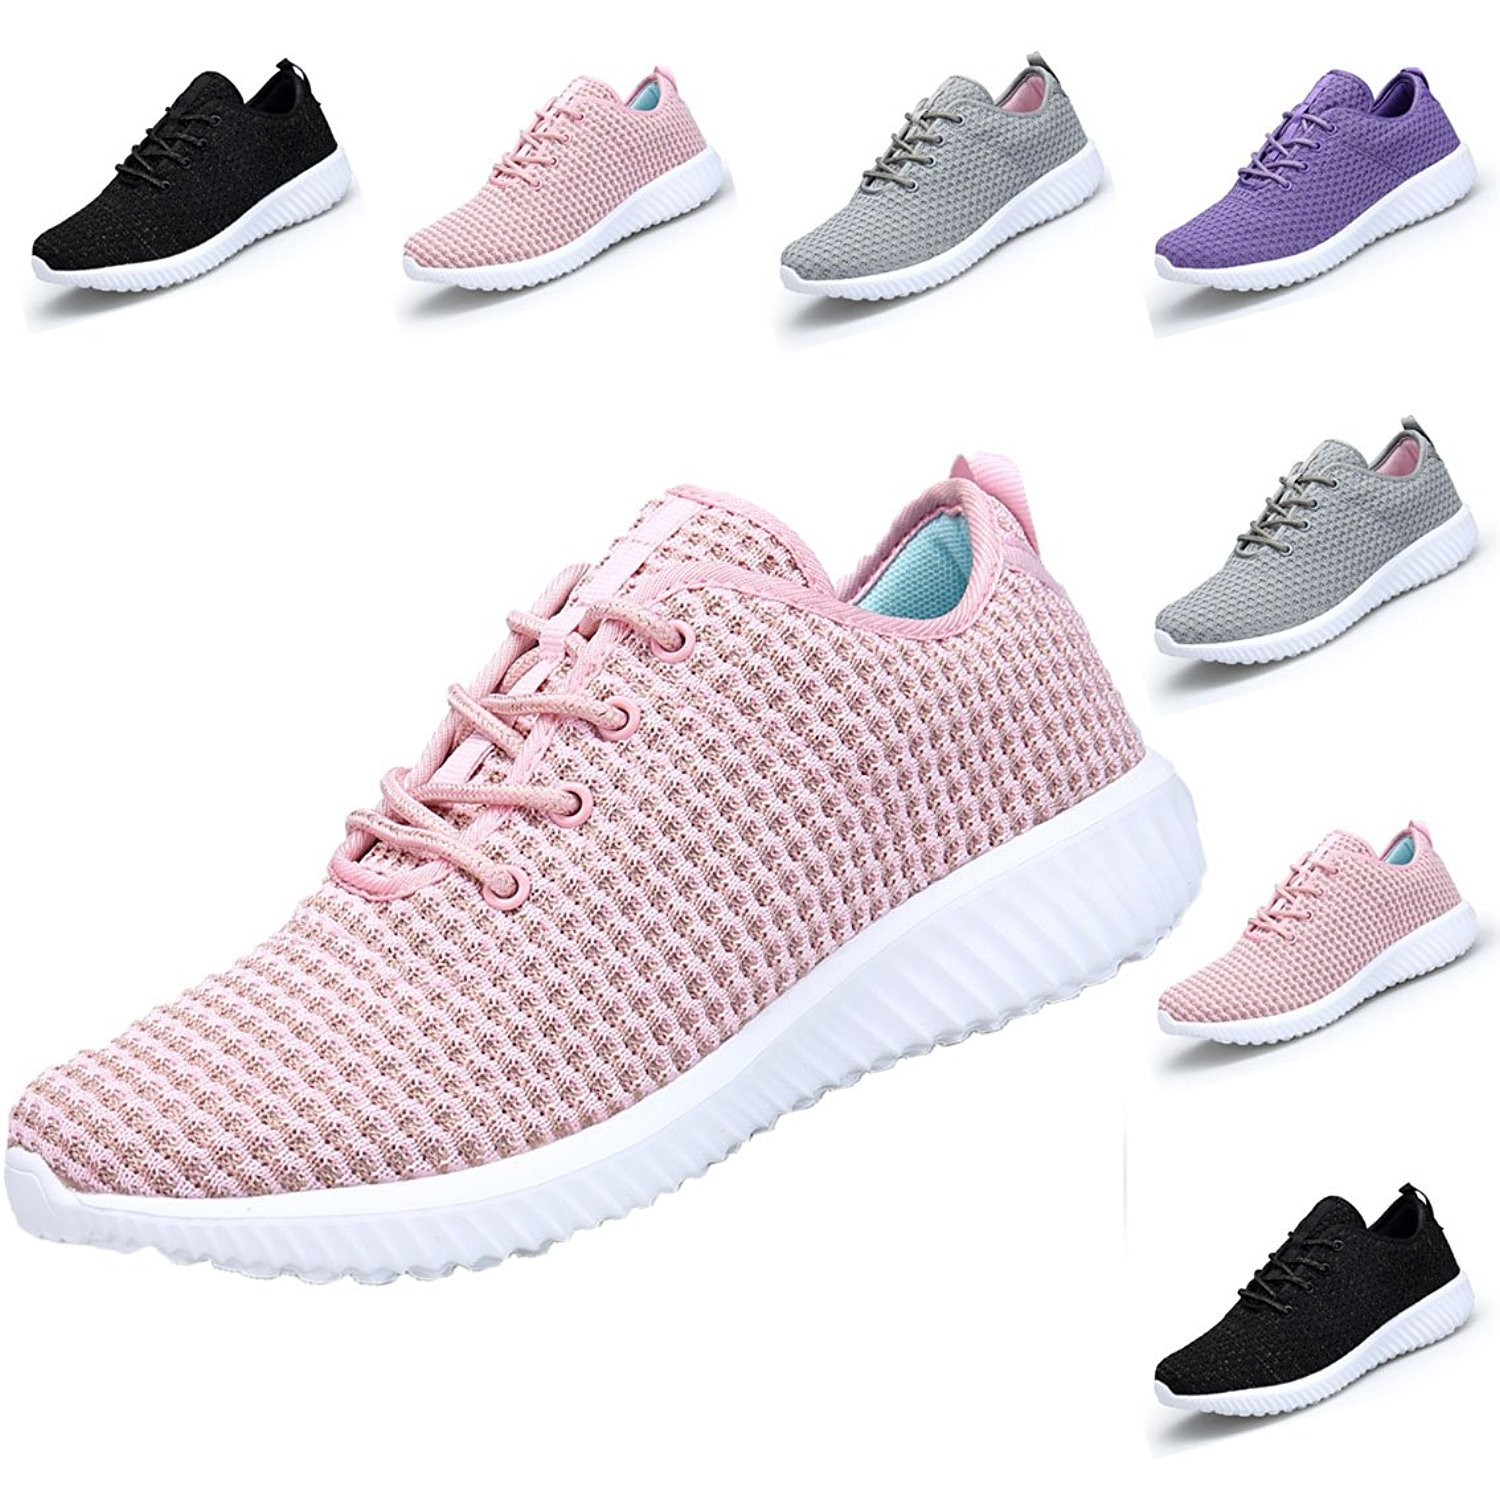 DOMOGO Lightweight Shoes Women Sneakers Casual Sport Shoes B077JTQW86 EU 37/Women 7M|Pink